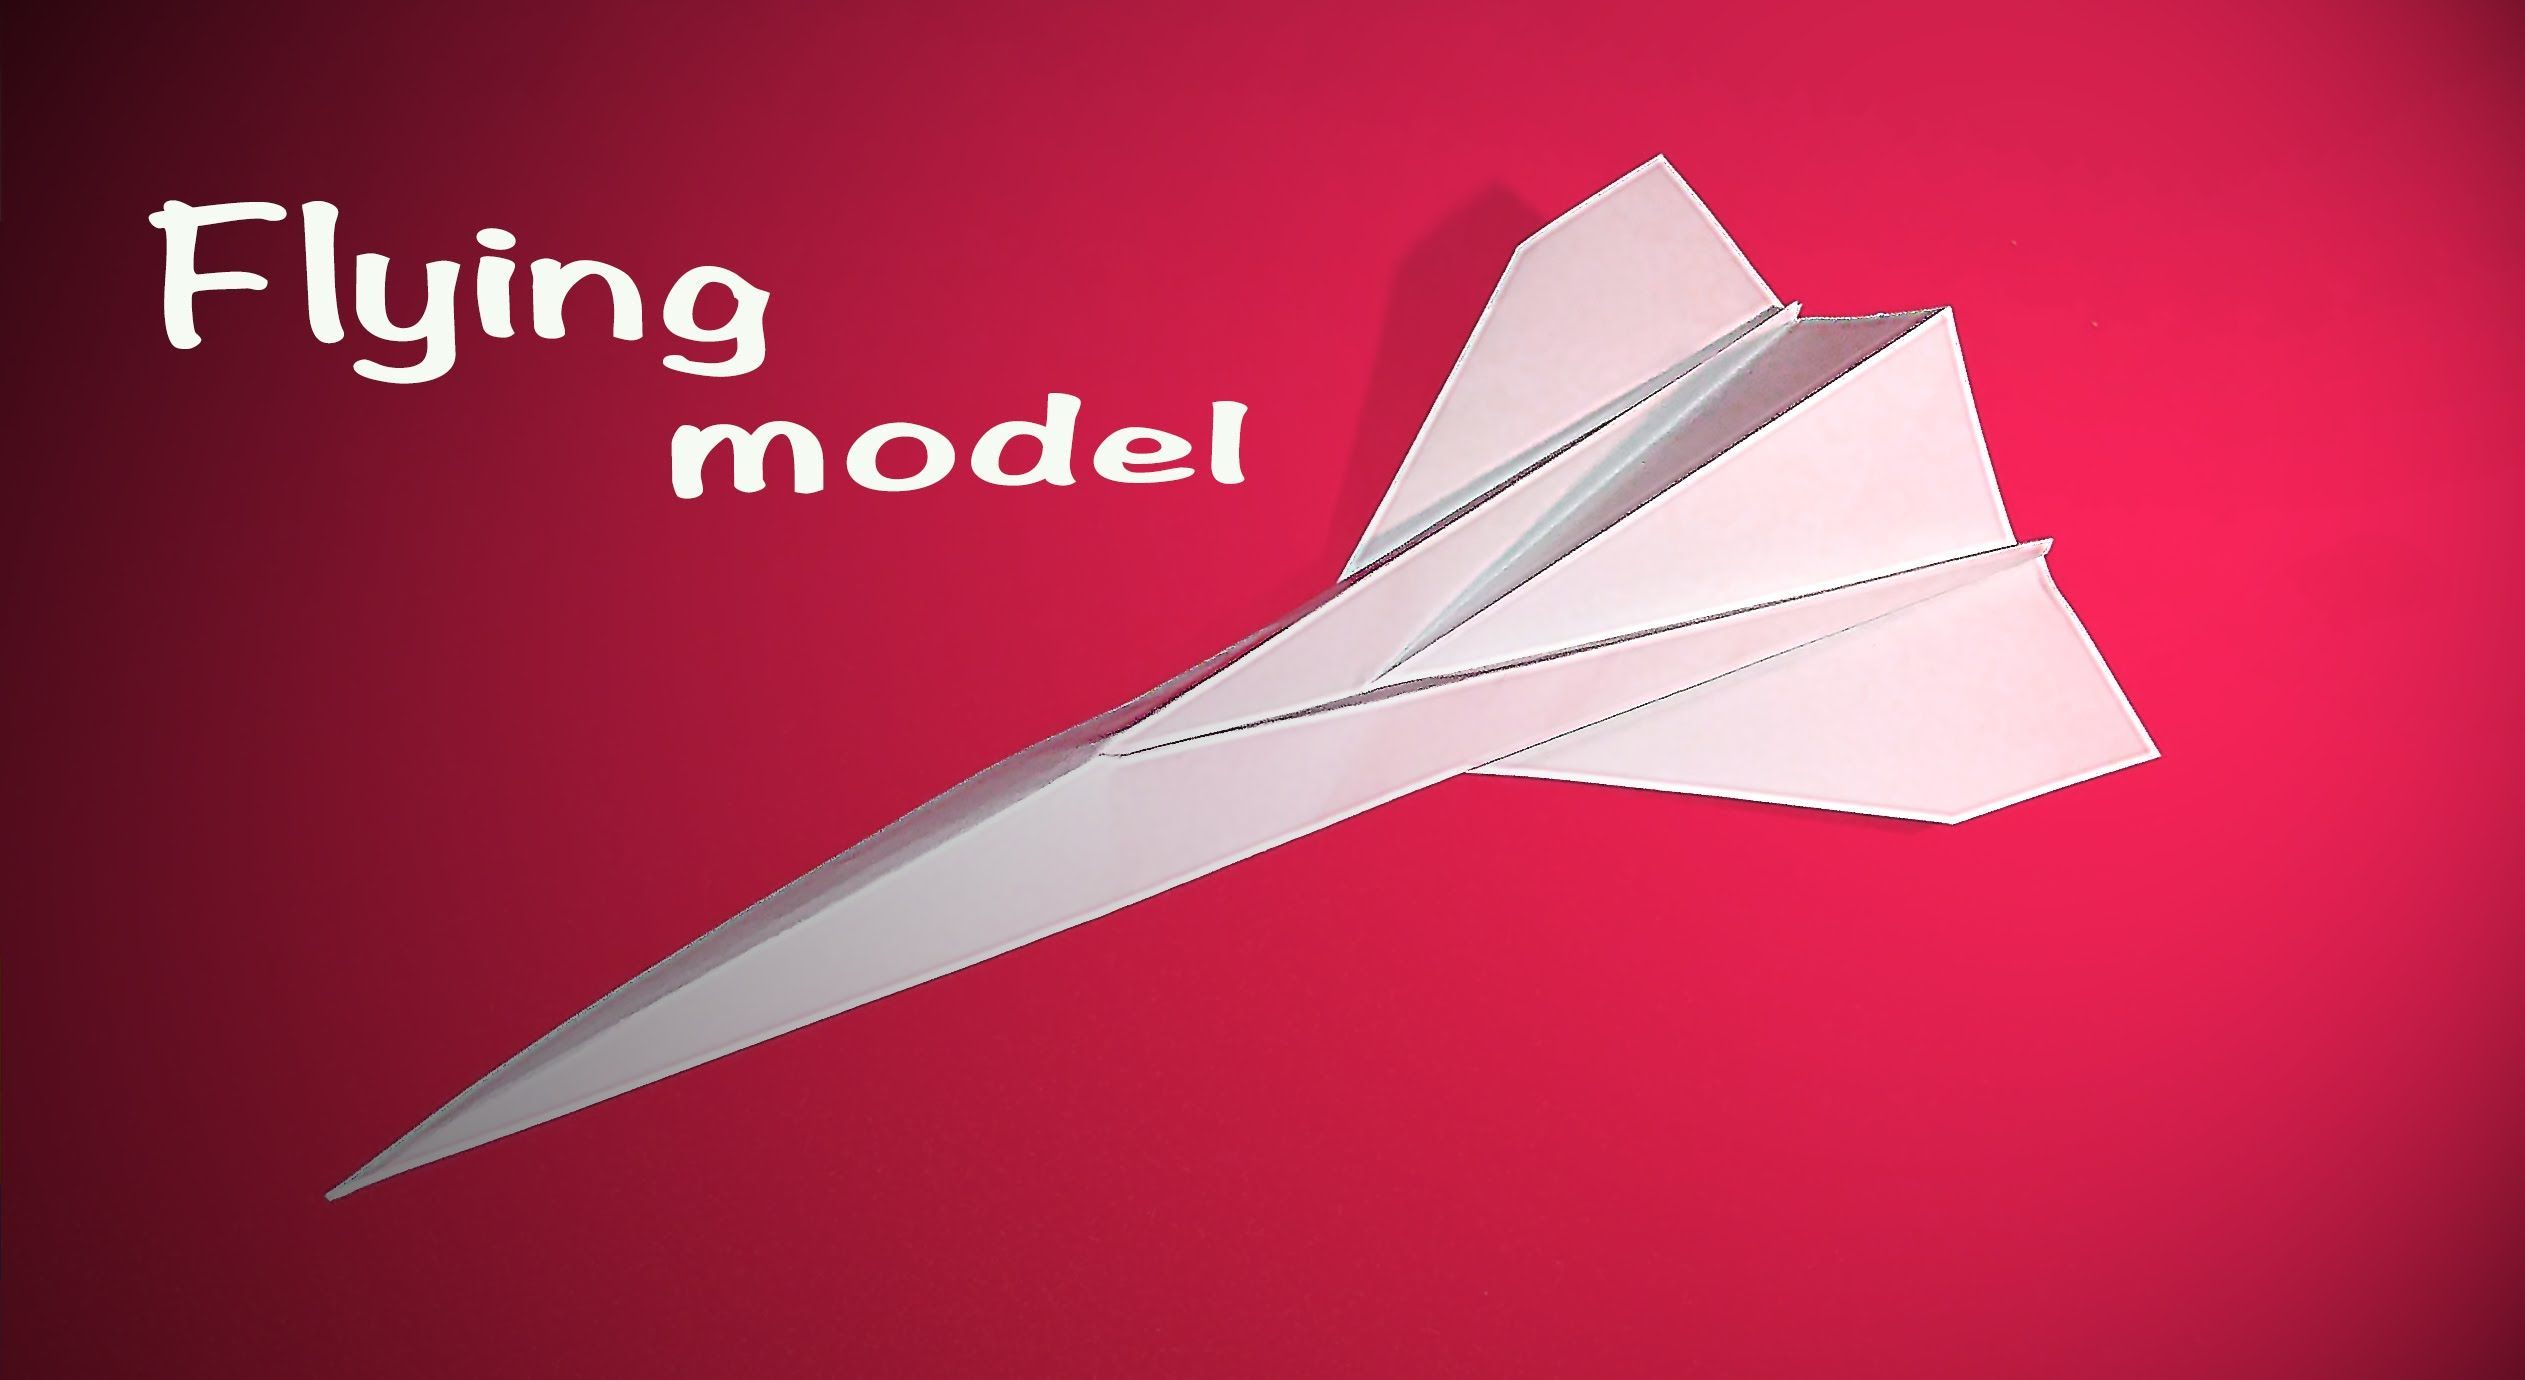 Easy Origami Concord Flying Model Paper Airplane Concord Only 9 Steps Origami Easy Paper Airplanes Paper Plane